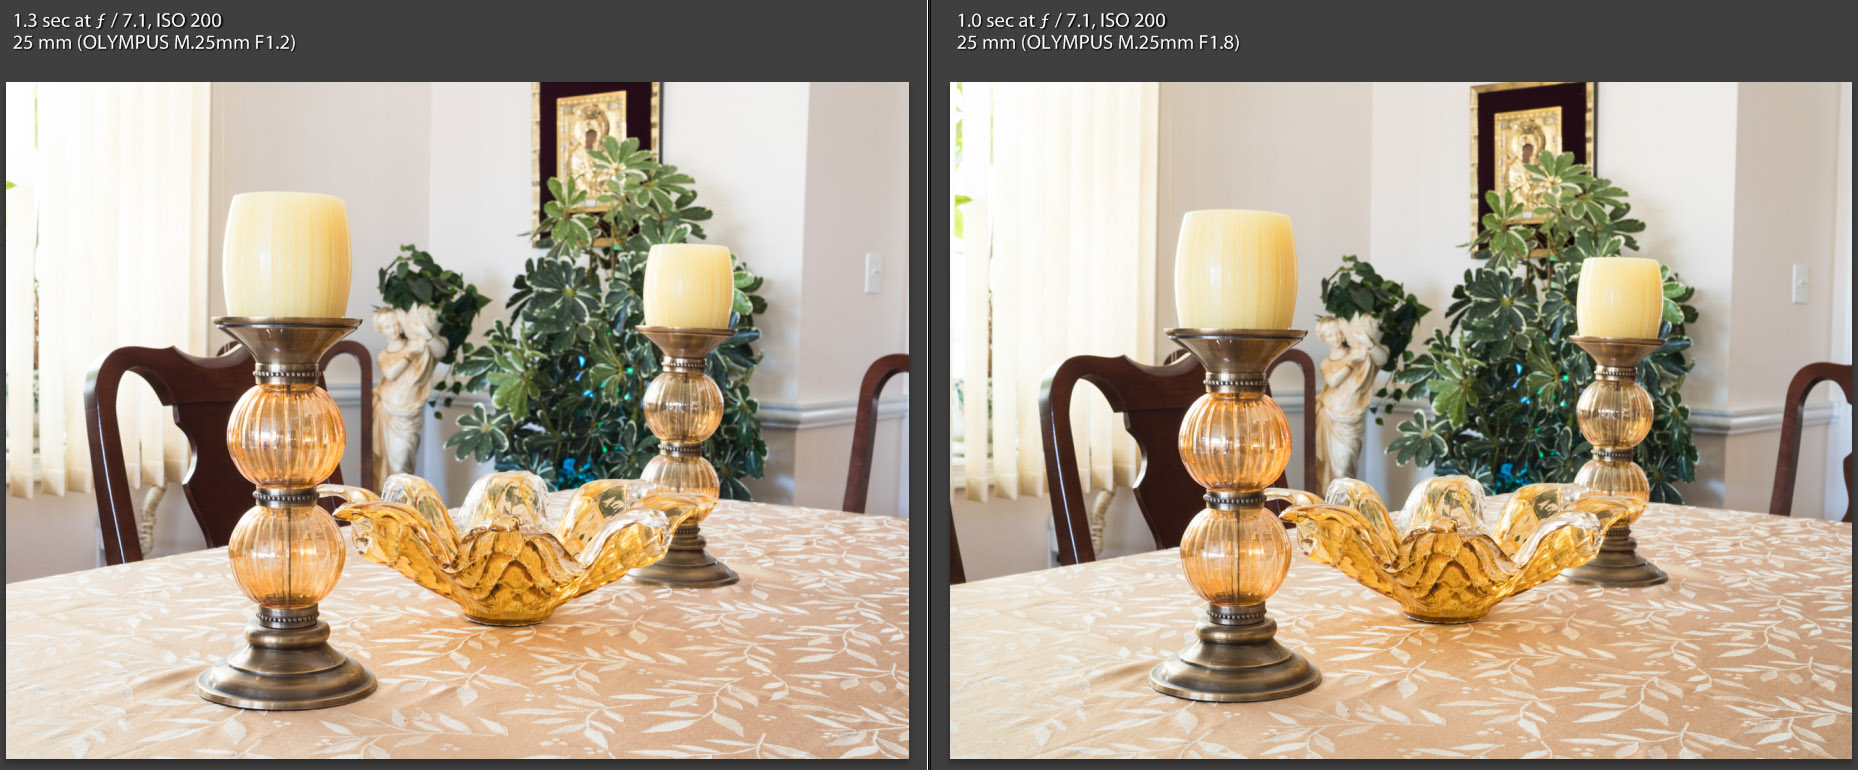 Olympus 25mm F/1 2 vs 25mm F/1 8 Lens Review Part 3 - Side